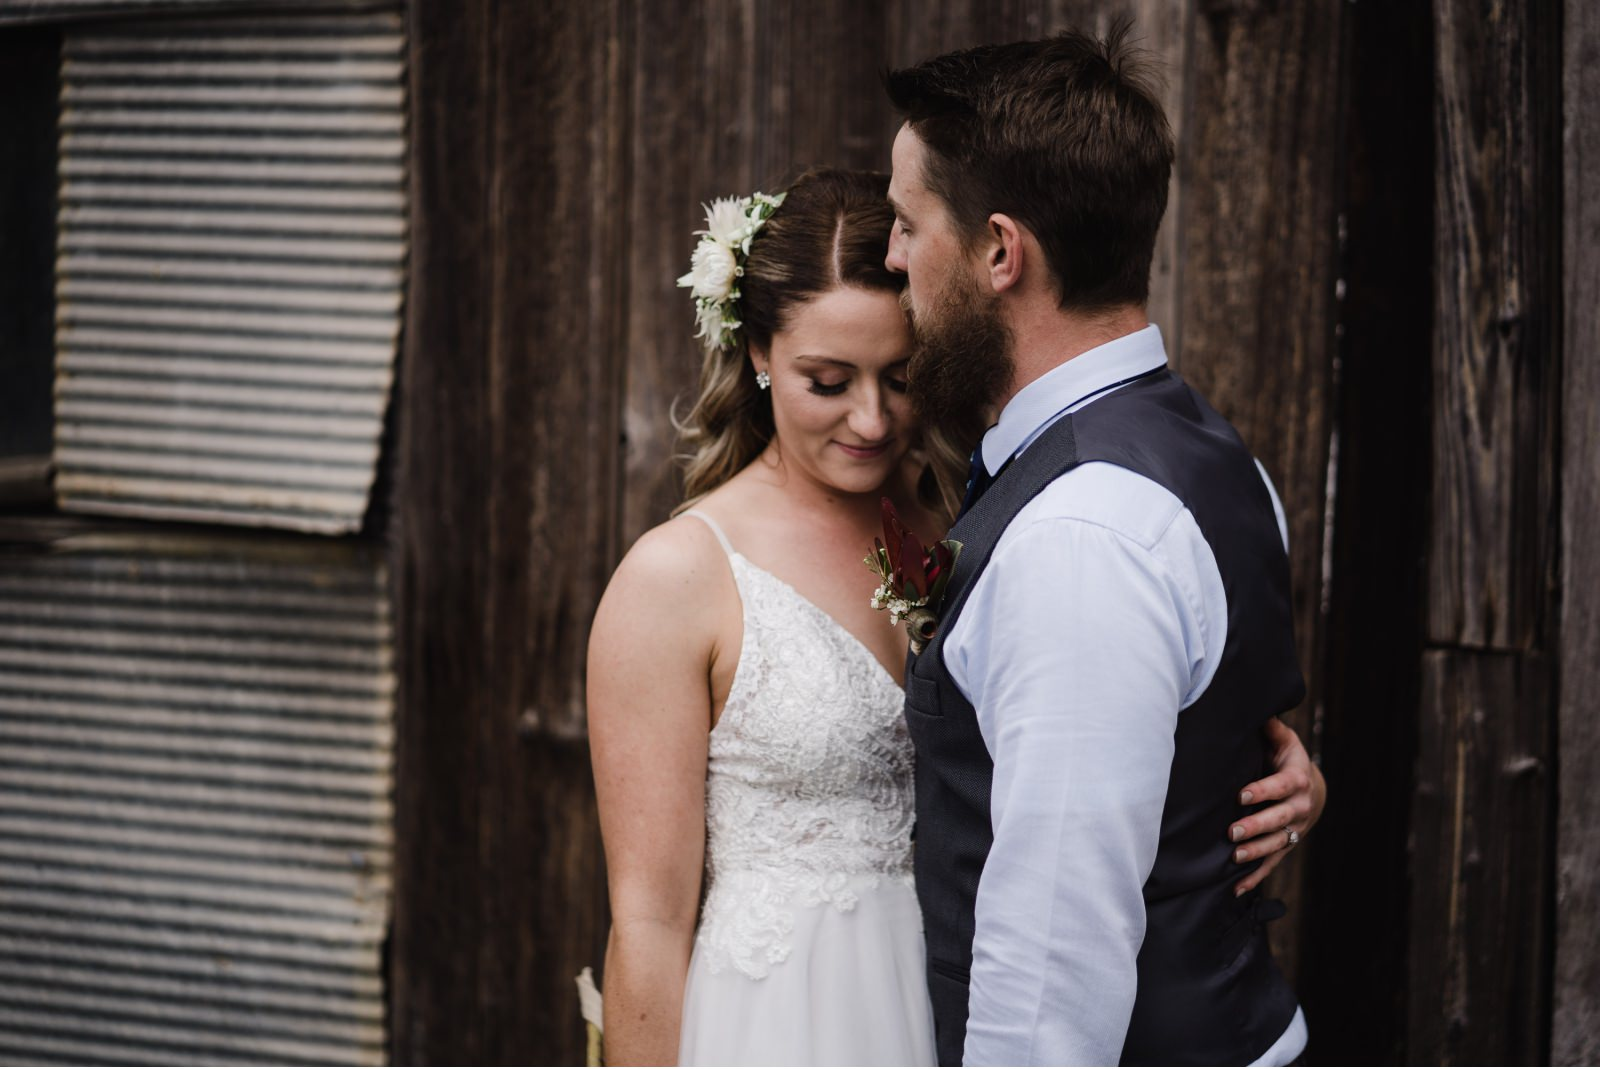 scone-wedding-photographer-upper-hunter-valley-36